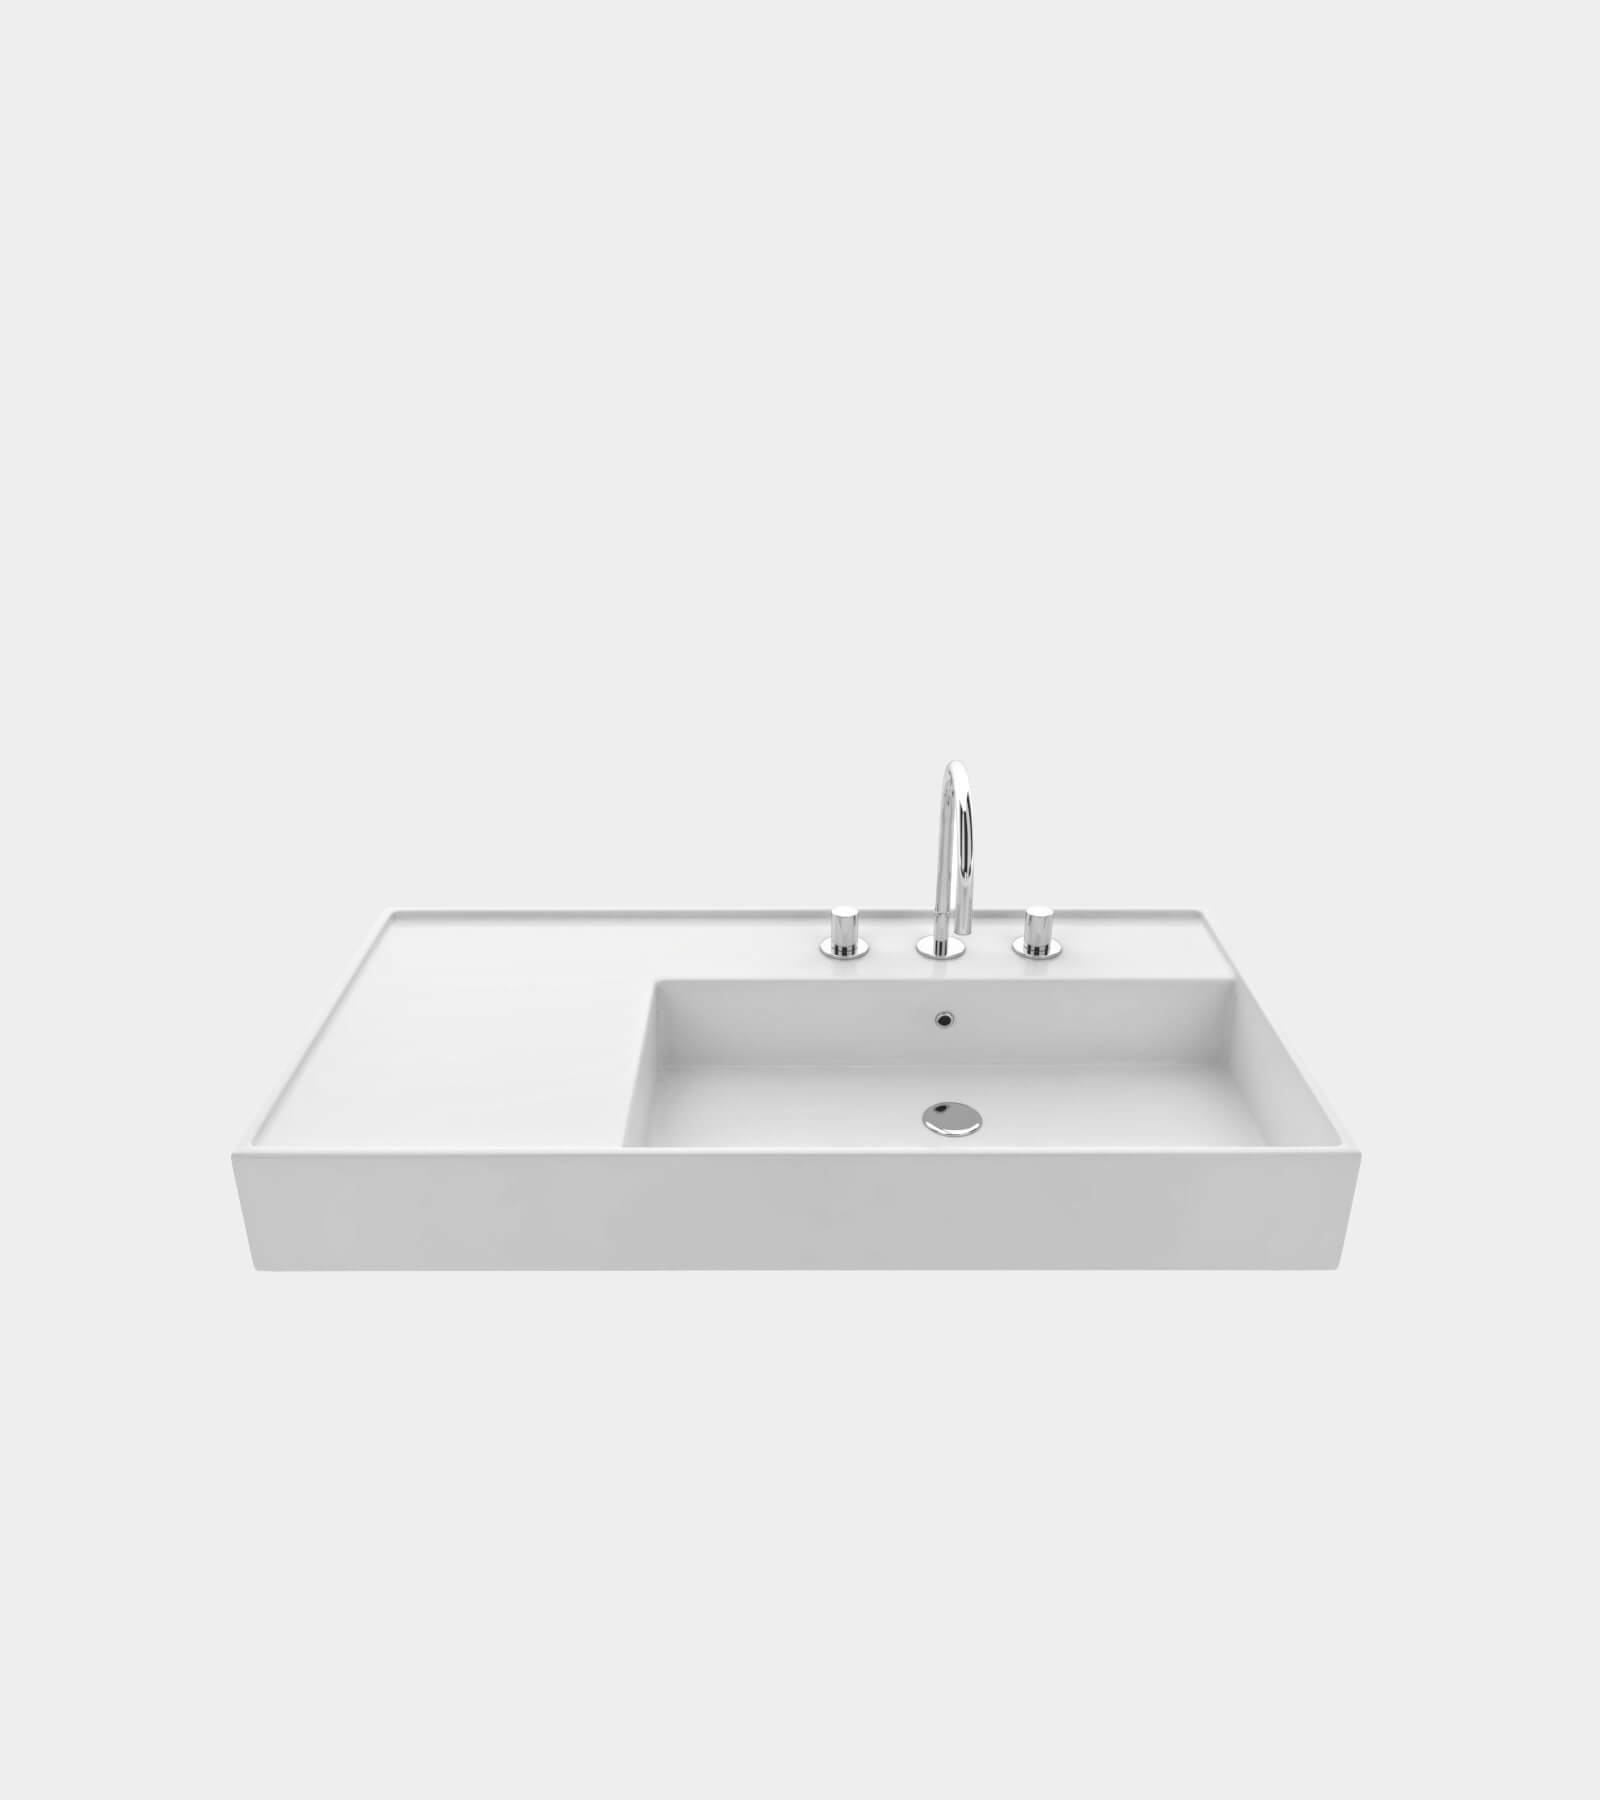 Washbasin with faucet- 3D Model